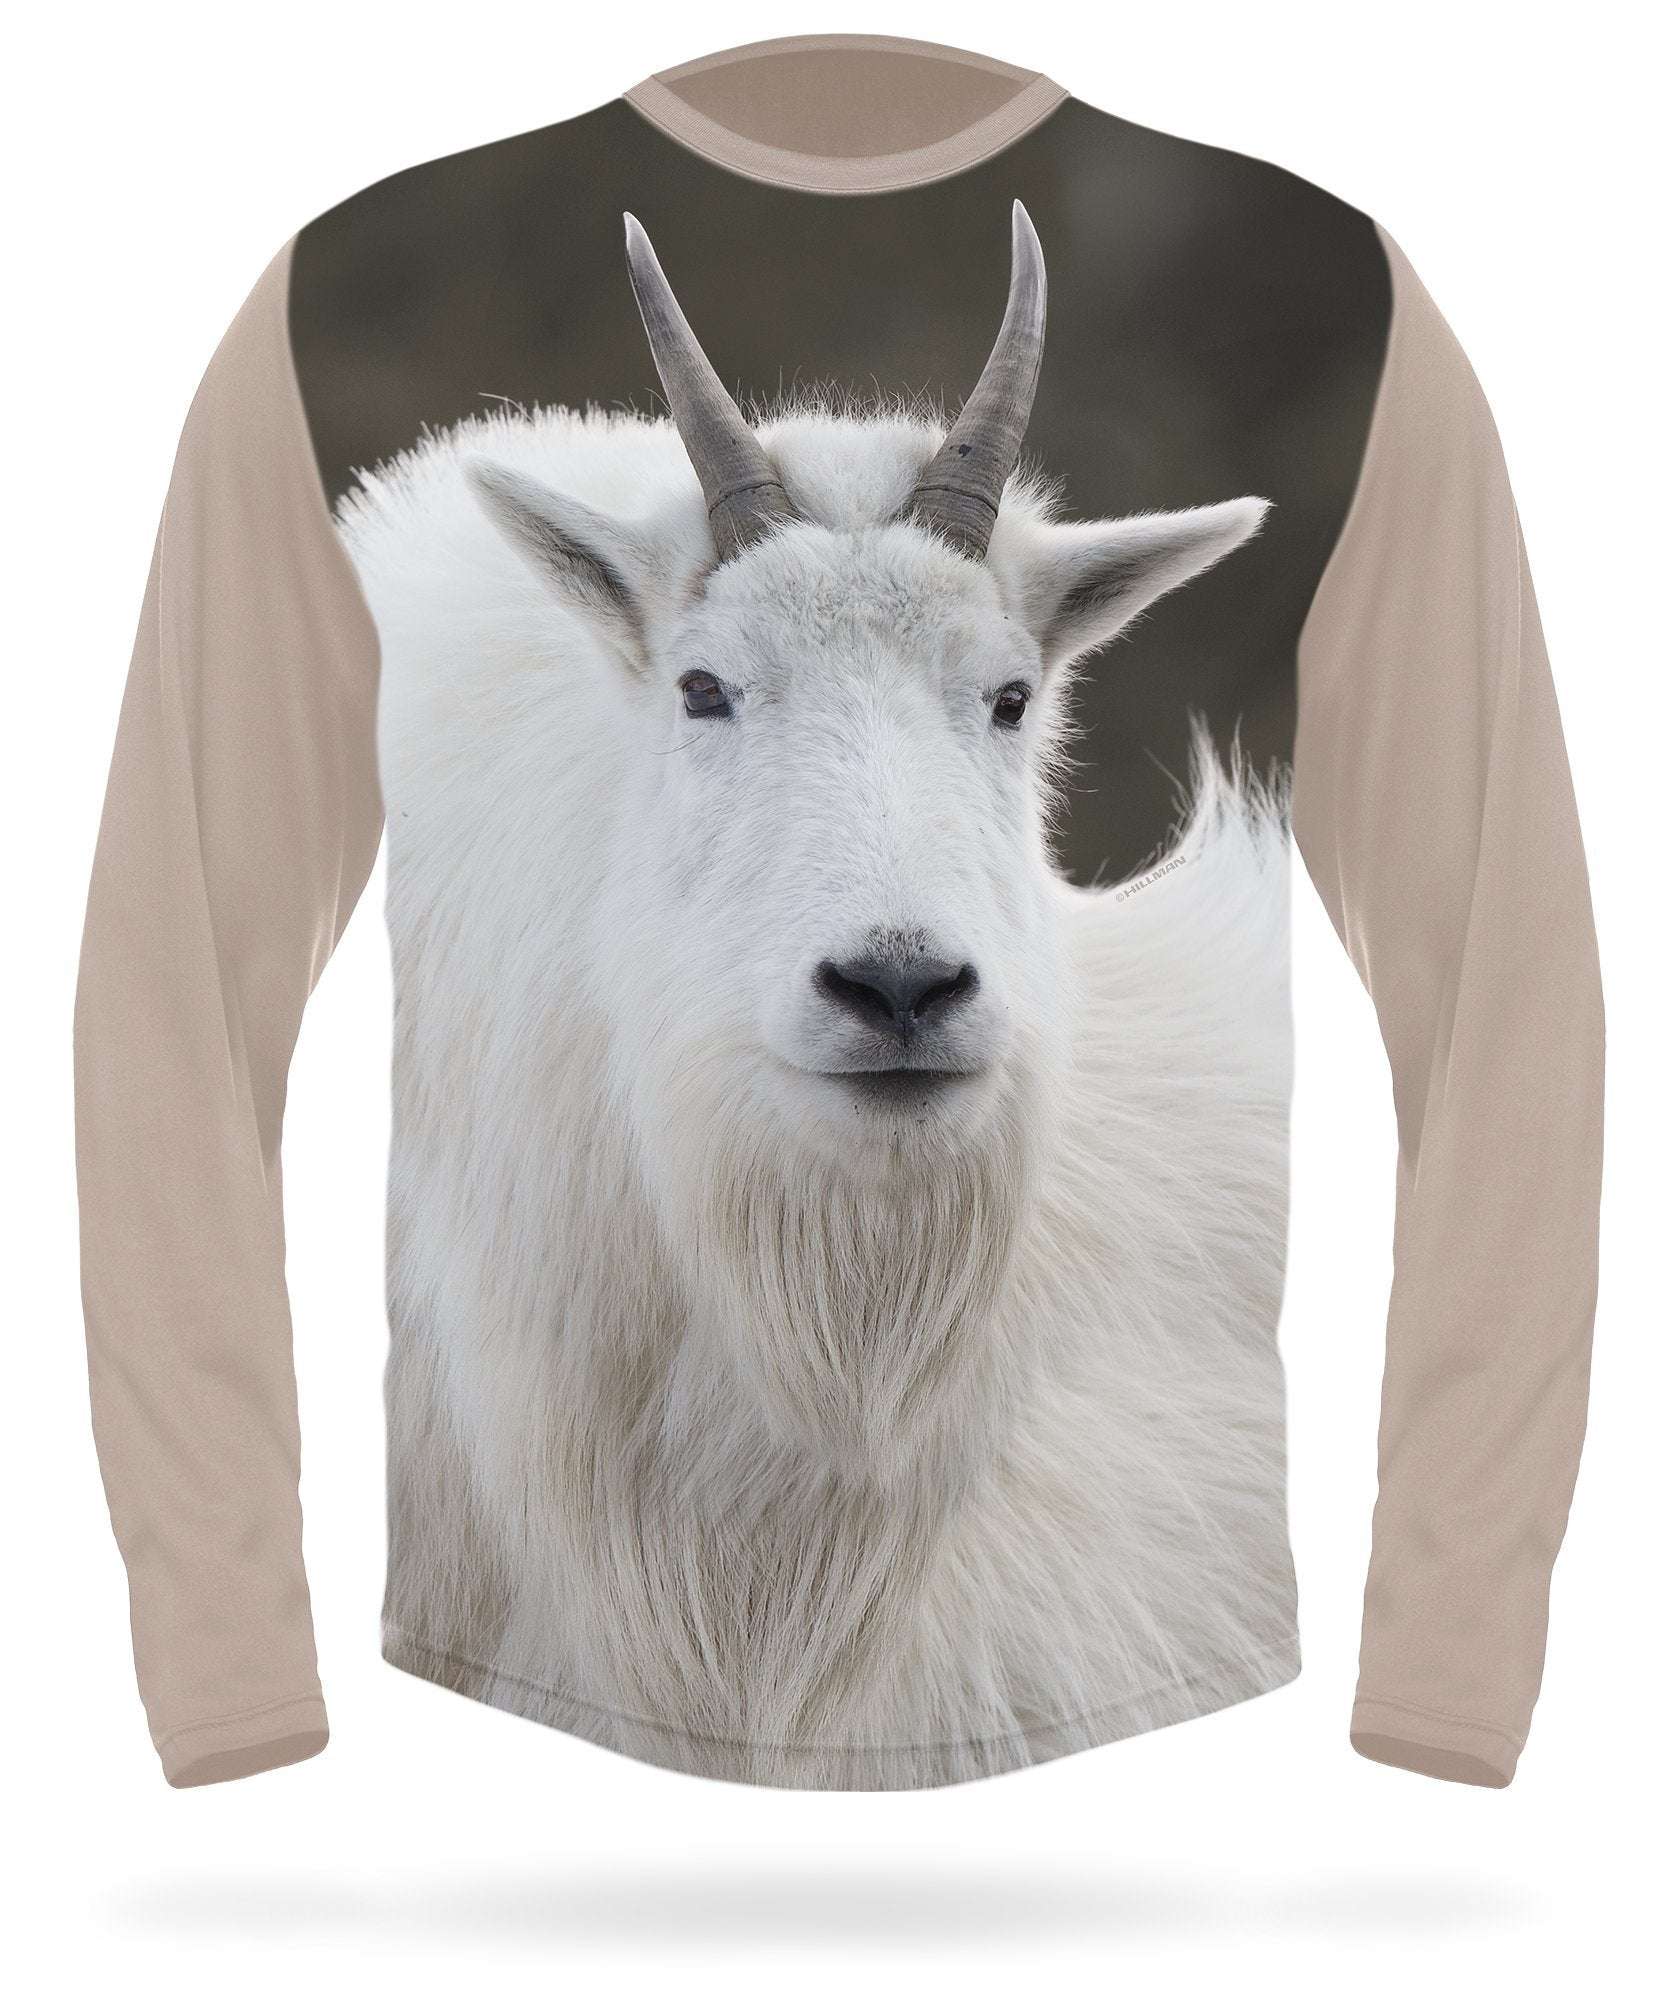 Mountain Goat T-Shirt - Long Sleeve